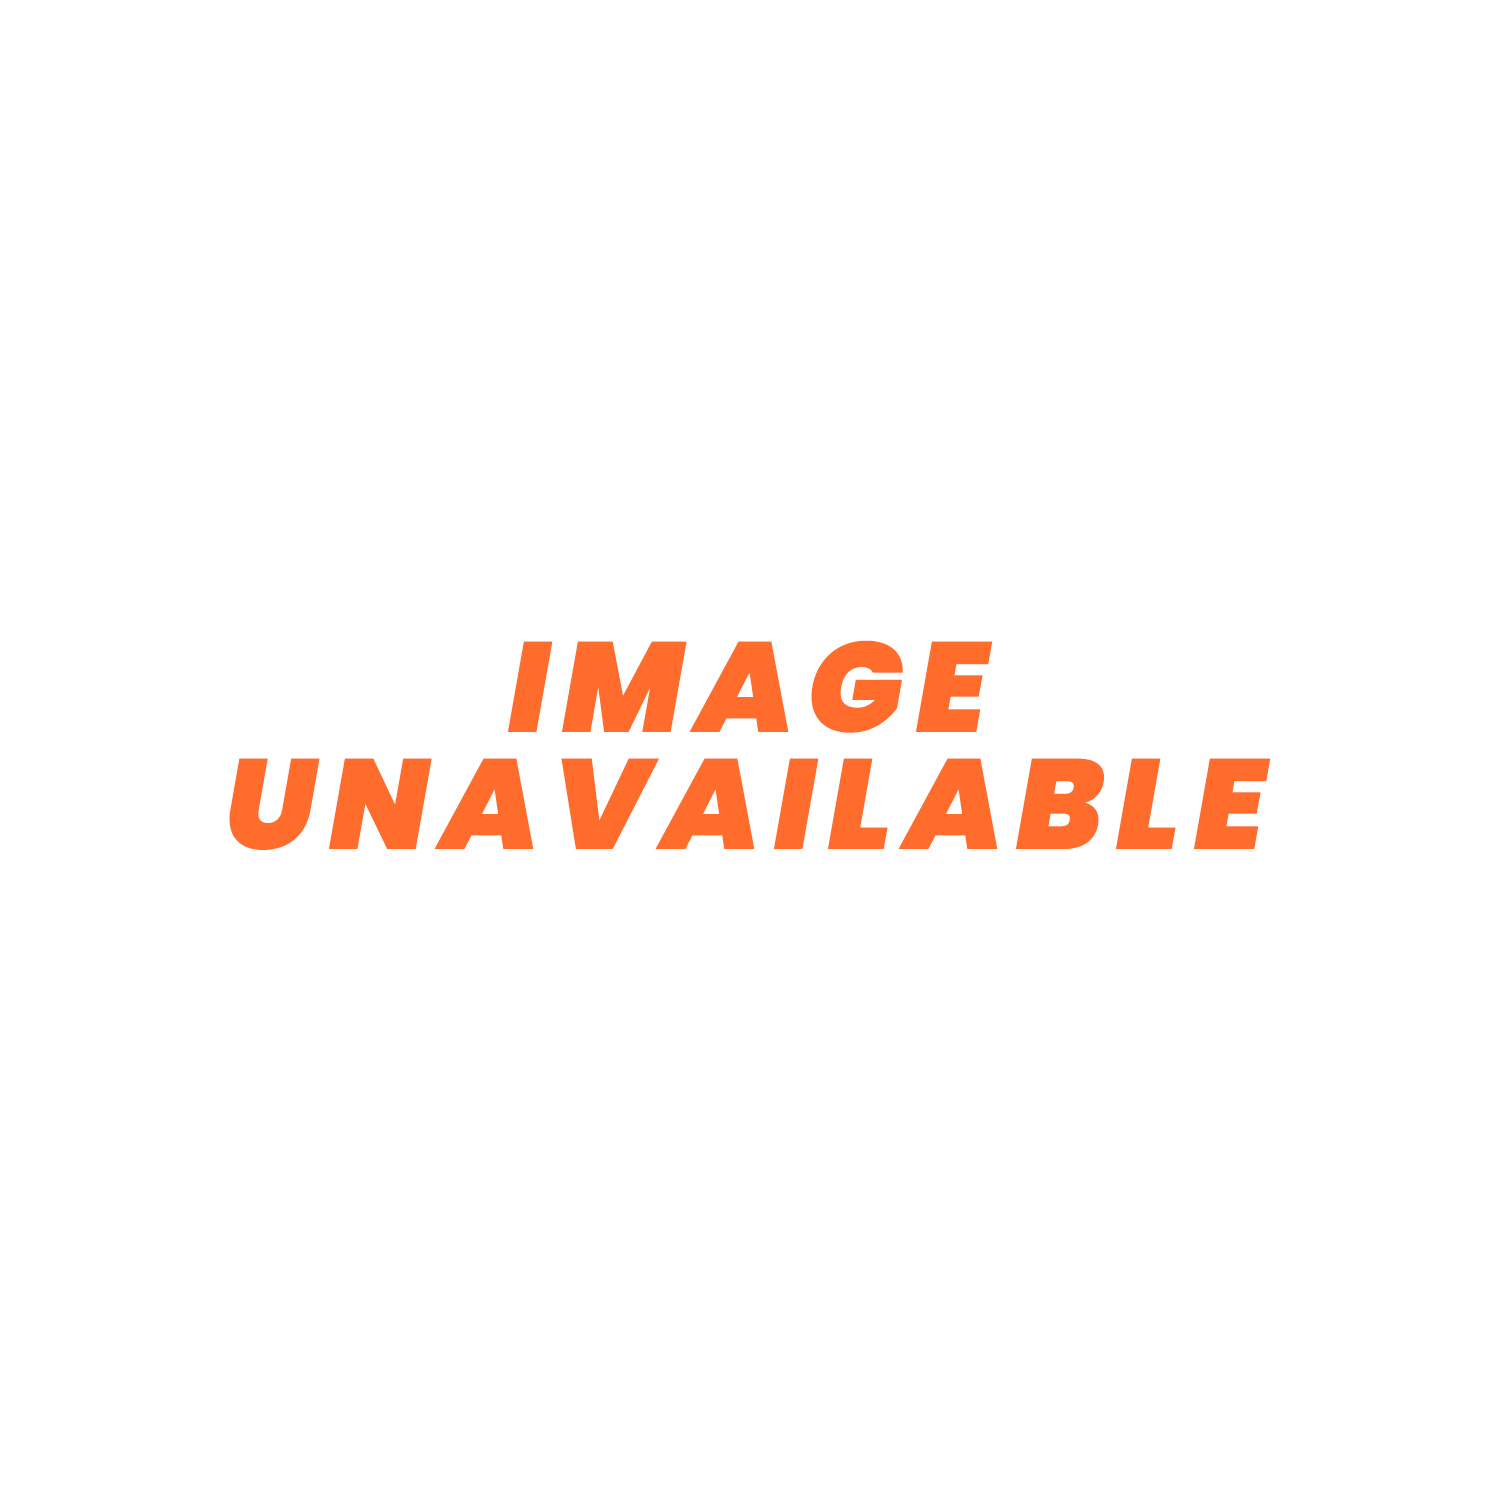 220 V AC 500w Panel Mounted Electric Heater Front